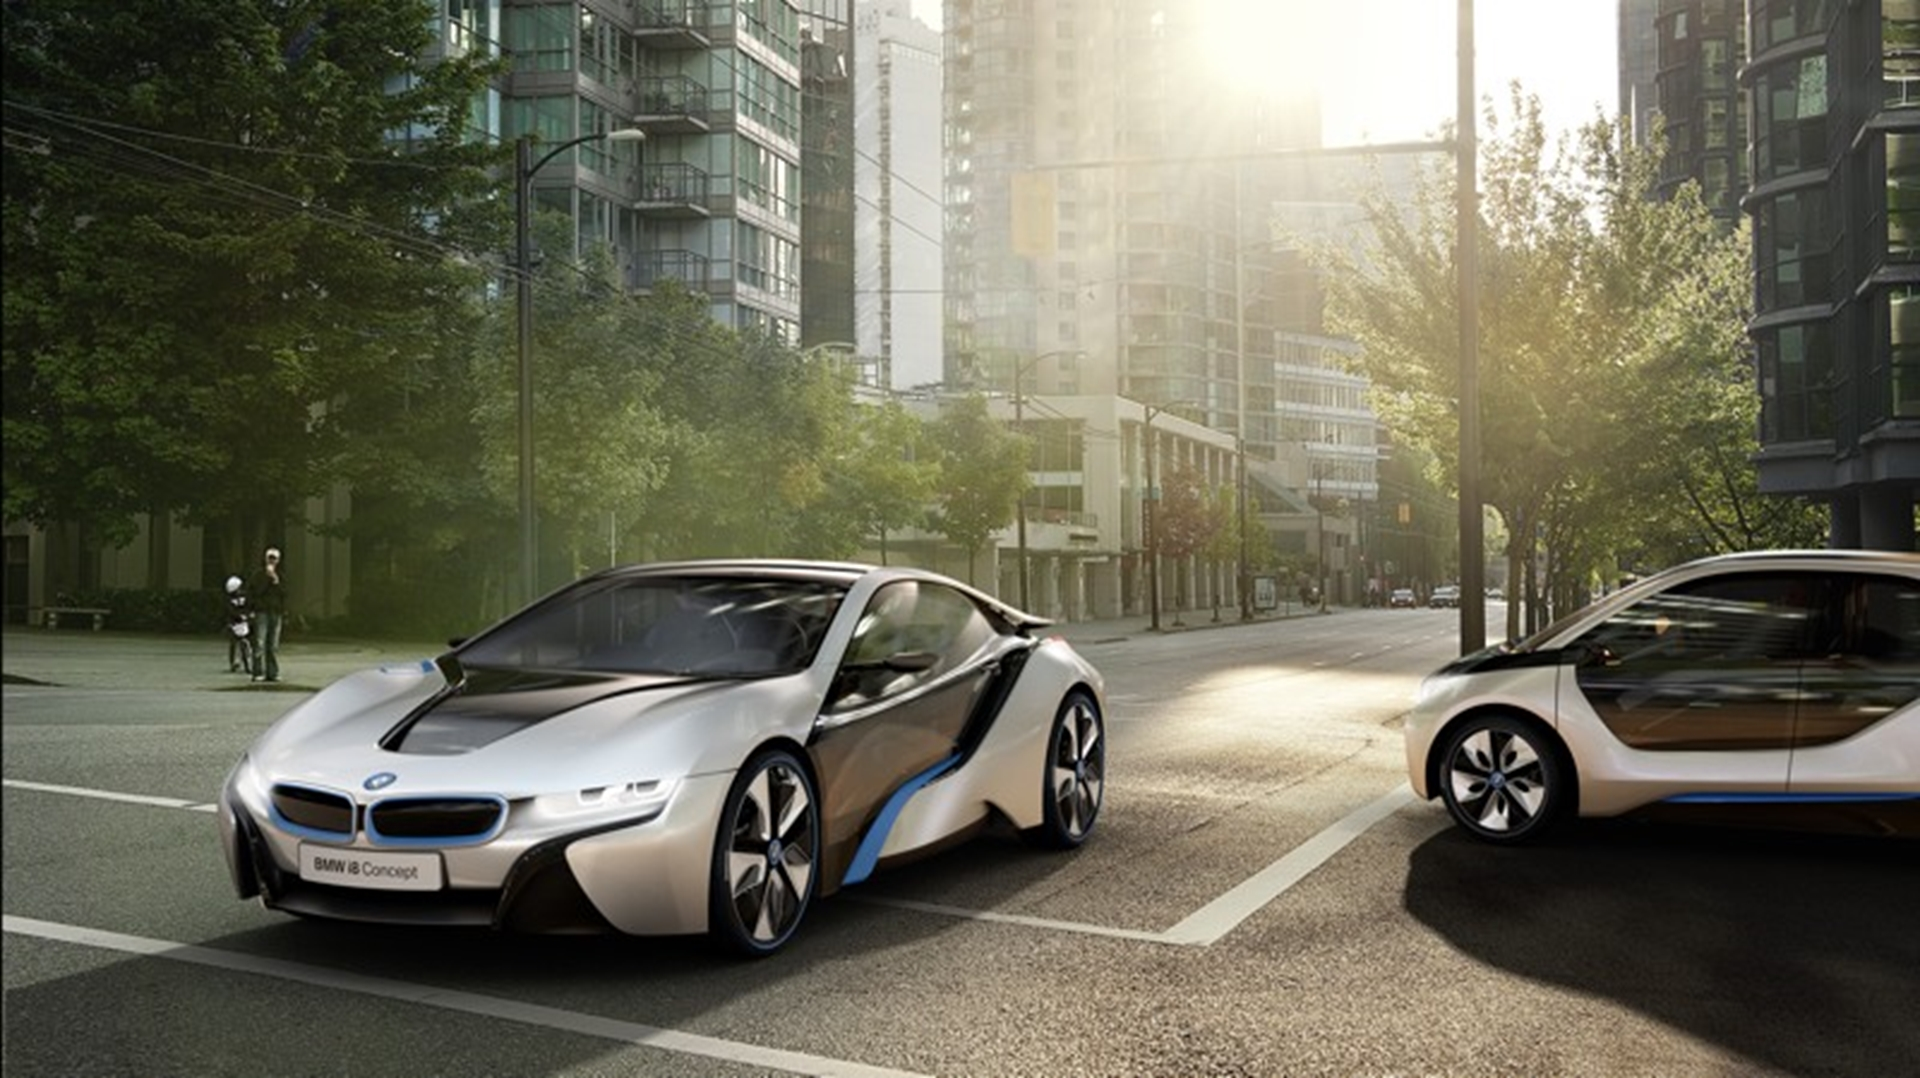 Fully Electric BMW I3 Concept And Hybrid Electric BMW I8 Concept To Debut  At The 2011 LA Auto Show